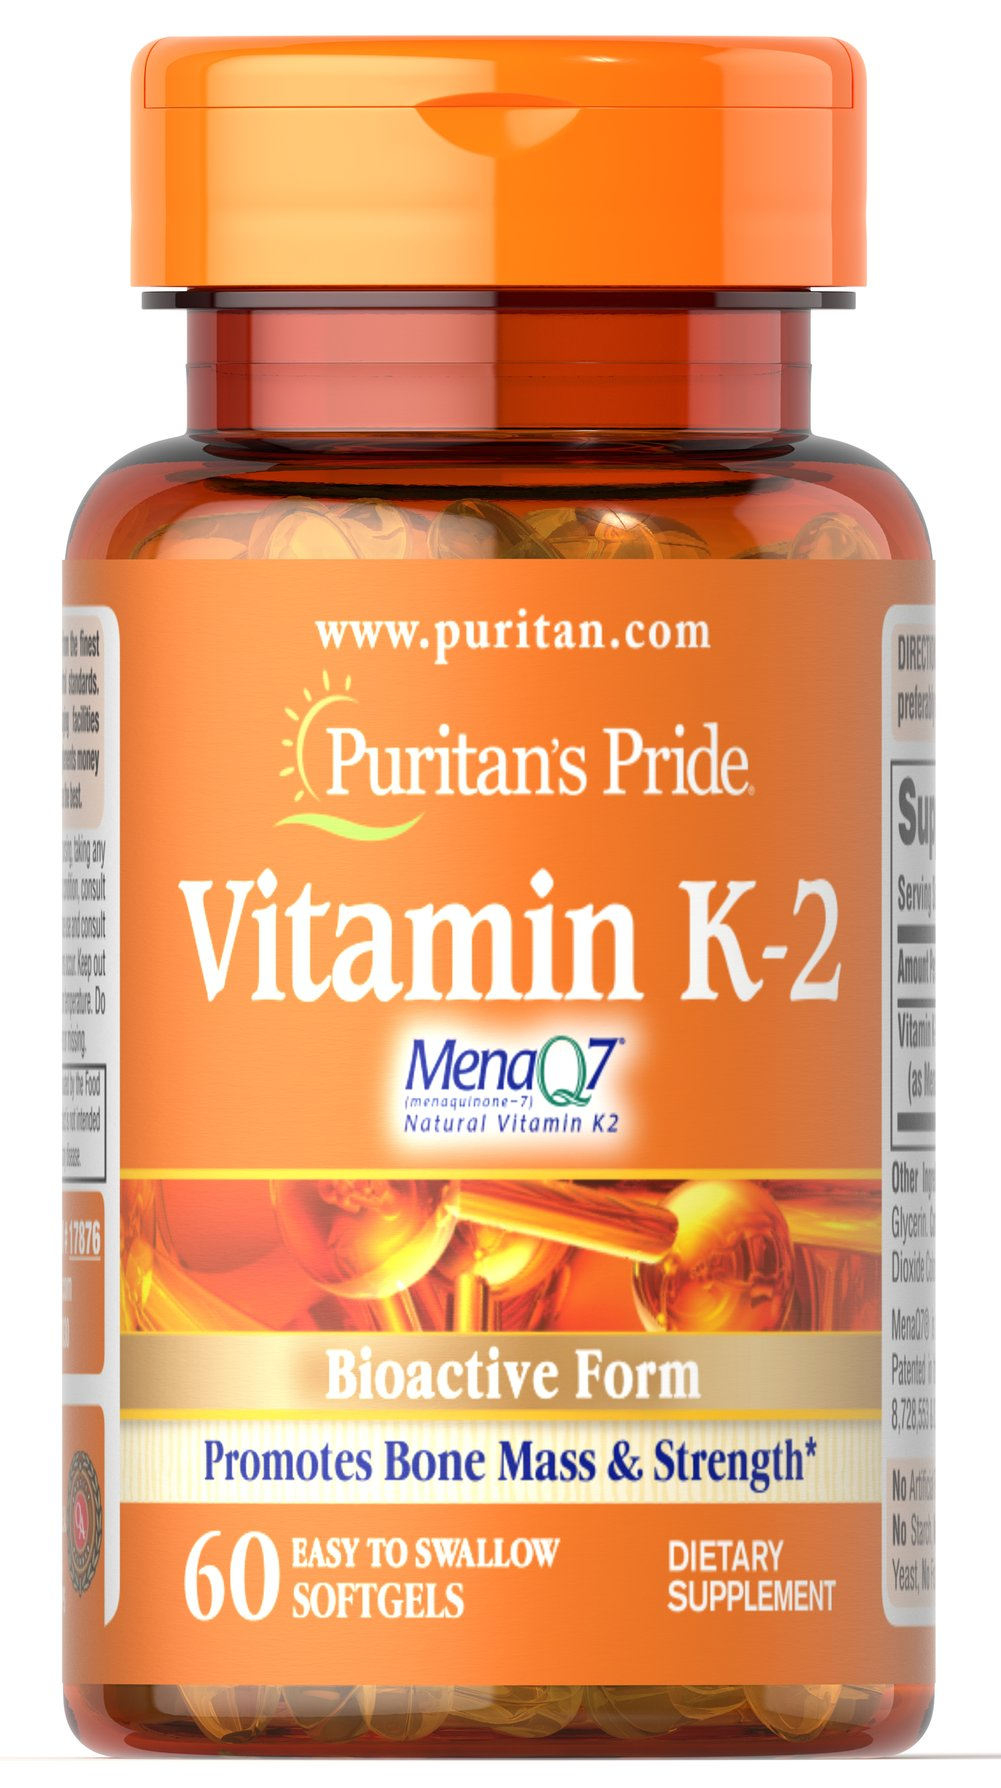 Vitamin K-2 (MenaQ7) <p>Plays an important role in maintaining bones health and strength**</p>  <p>Features MenaQ7 — a natural, bioactive form of Vitamin K</p>  <p>Vitamin K-2, also known as Menaquinone, supports normal blood clotting and activates enzymes responsible for bone formation.**</p> 60 Softgels 50 mcg $29.99